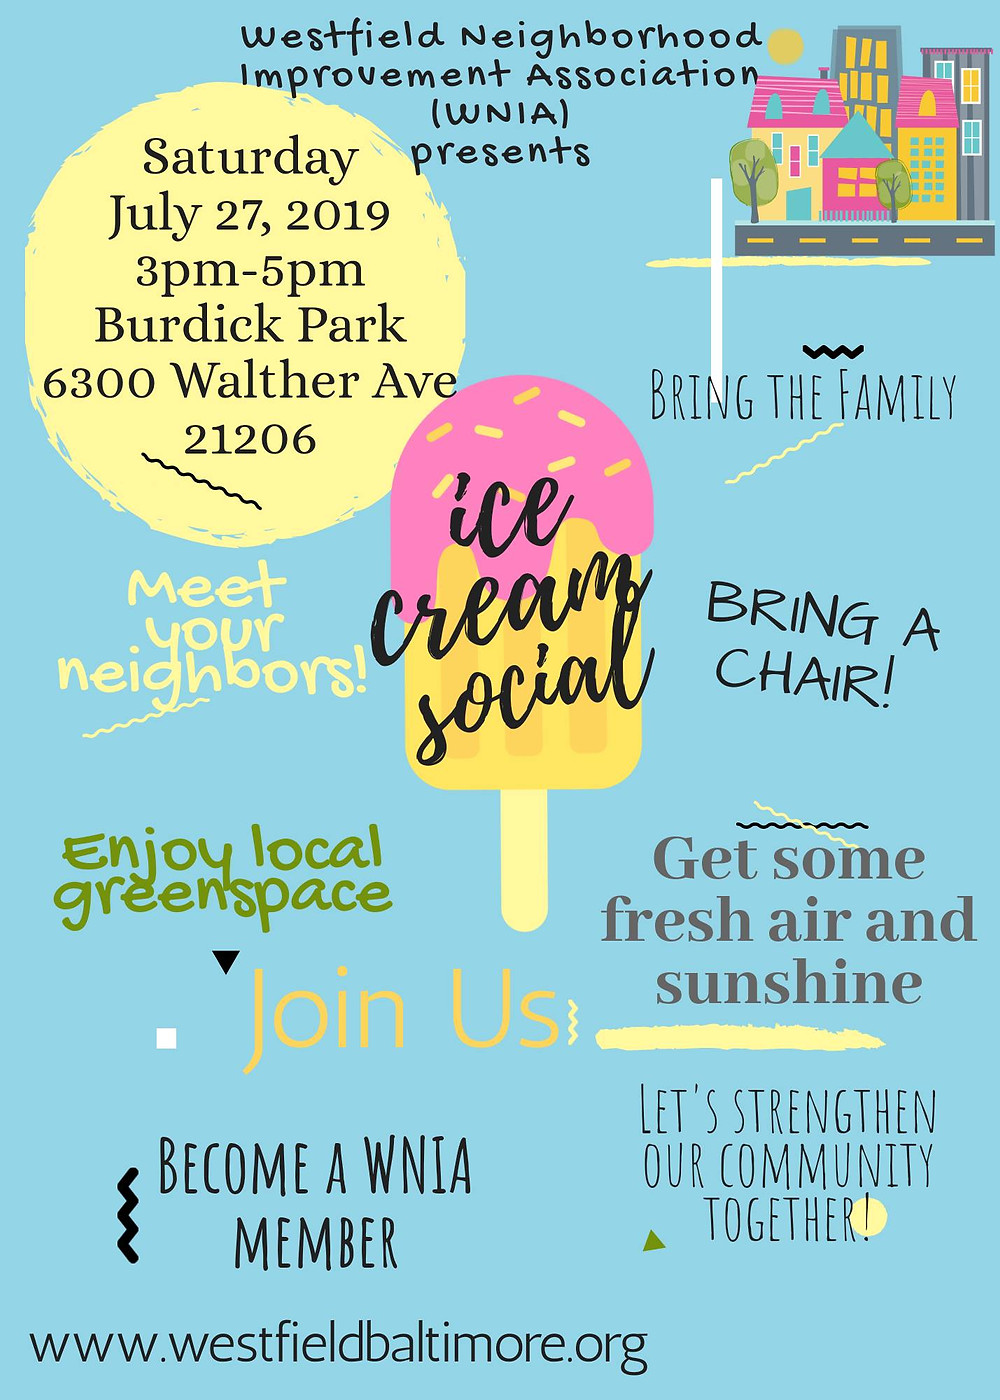 Weather bug says the weather will be sunny with the high of 88 so come join us at our first Ice Cream Social!